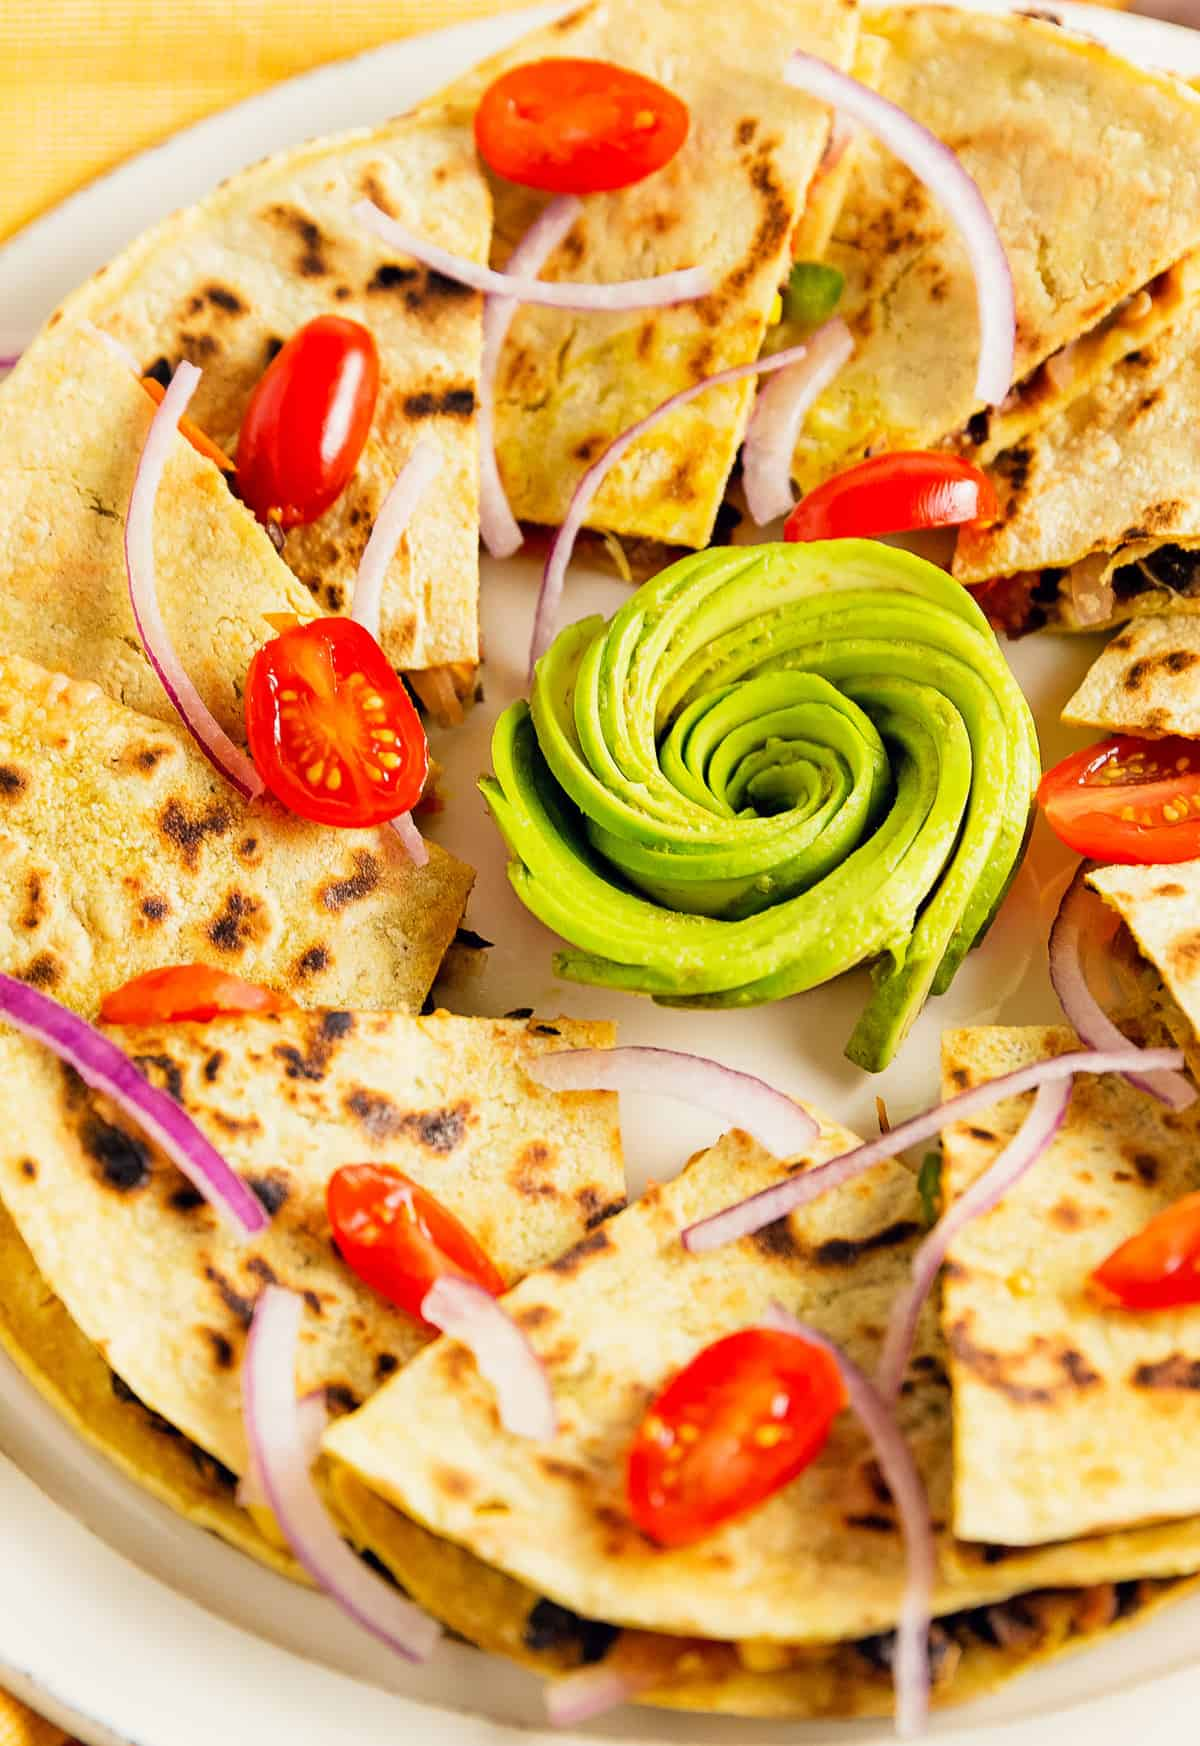 quesadilla, spicy black beans, vegan, vegetarian, whole food plant based, gluten free, recipe, wfpb, healthy, oil free, no refined sugar, no oil, refined sugar free, lunch, dinner, easy, fast, quick, dinner party, entertaining, Spanish rice, rice, black beans, green onions, tomatoes, avocado, quick dinner, fast dinner, dairy free, no dairy, Mexican, Southwestern, menu, plant based menu, vegan menu, weekly menu, meal plan, vegan meal plan, plant based meal plan